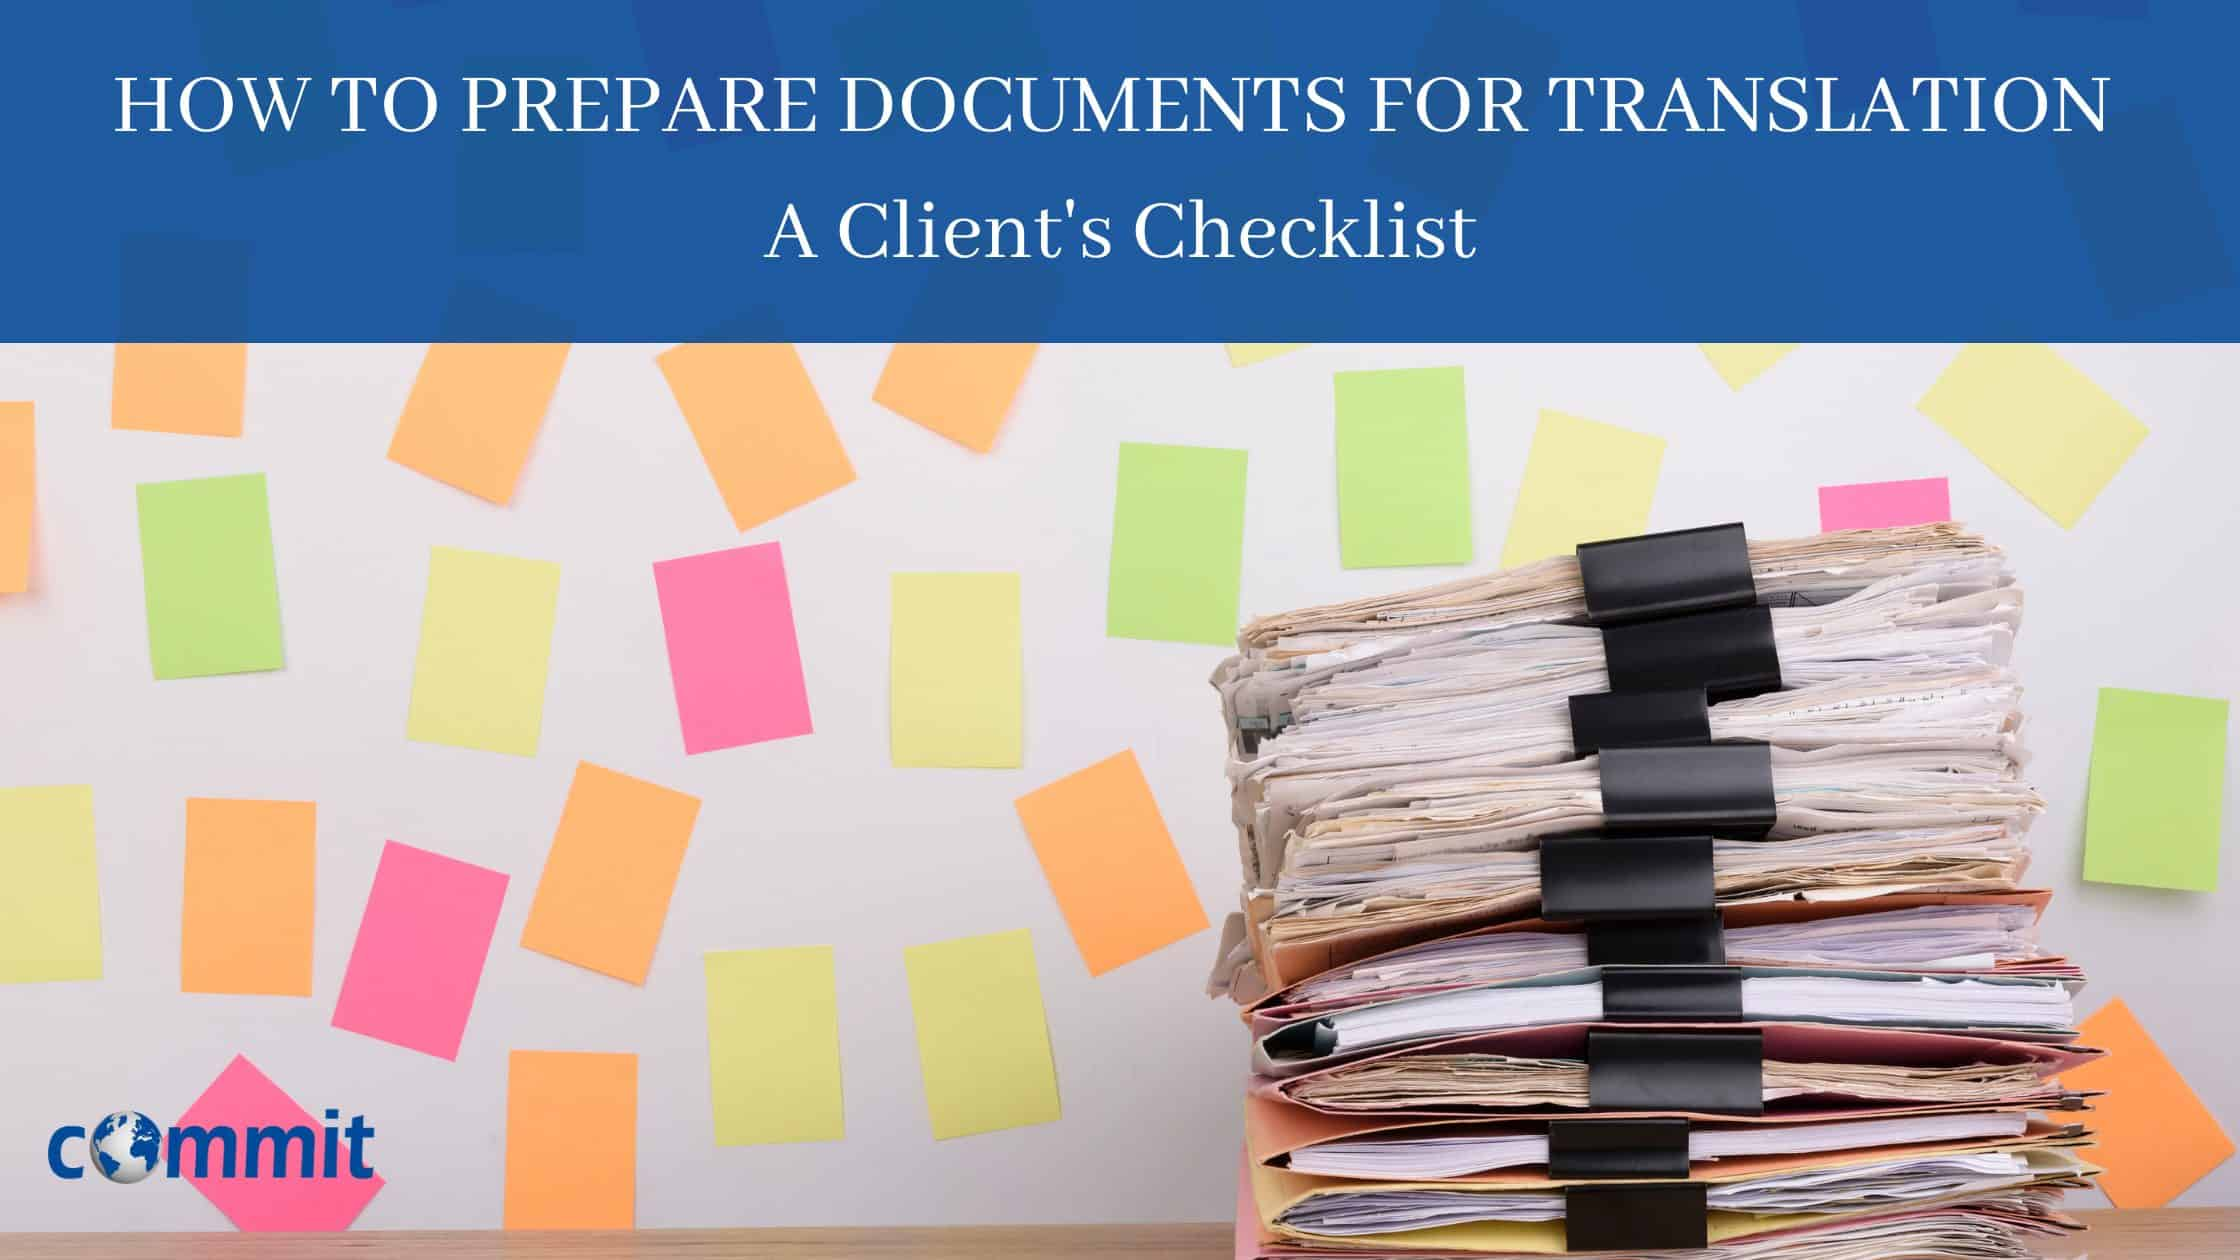 How to prepare documents for translation - <br/> A client's checklist